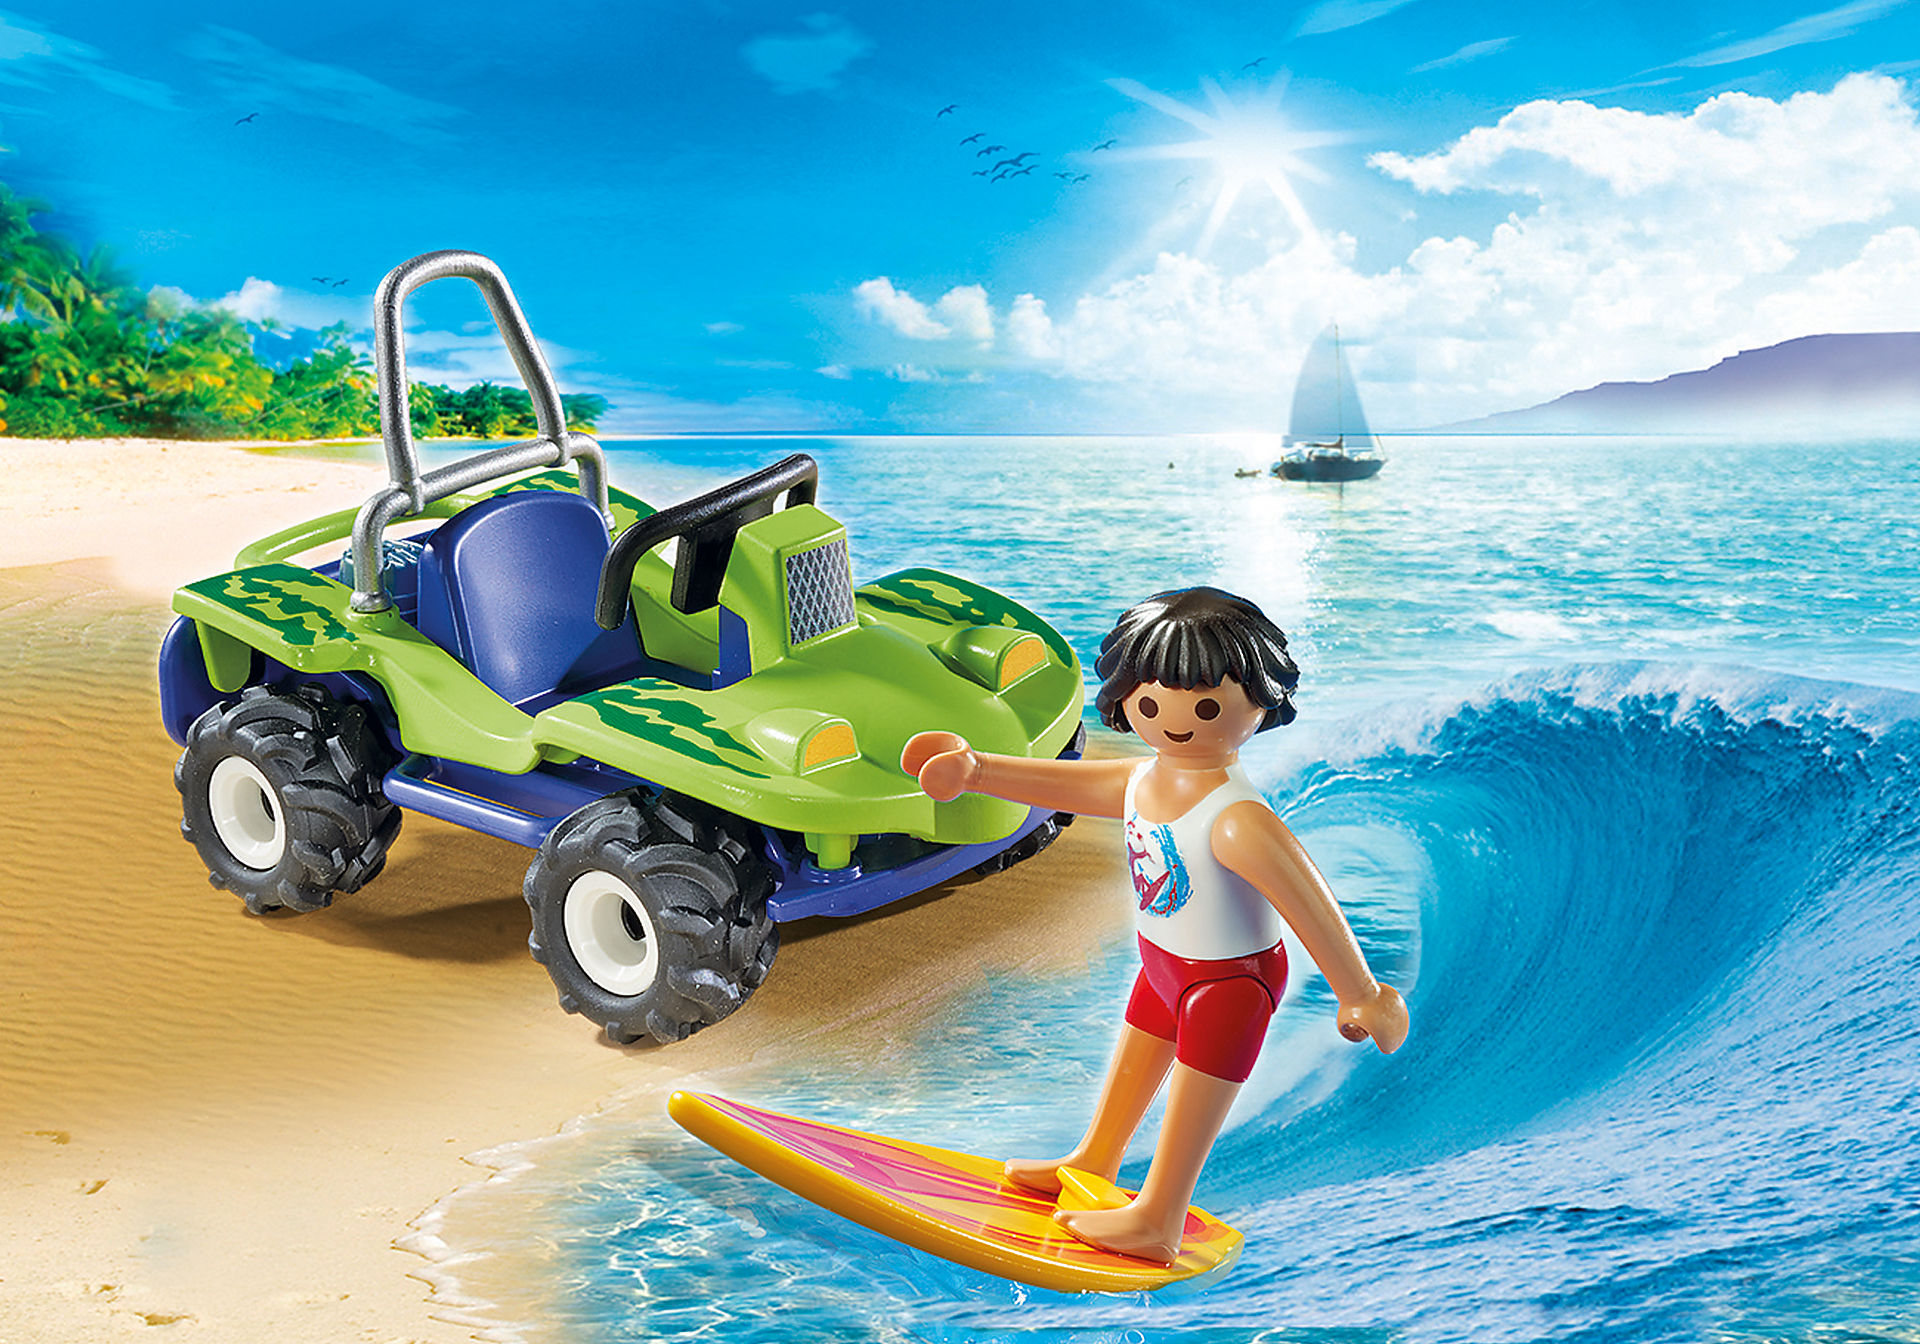 http://media.playmobil.com/i/playmobil/6982_product_detail/Surfer z buggy